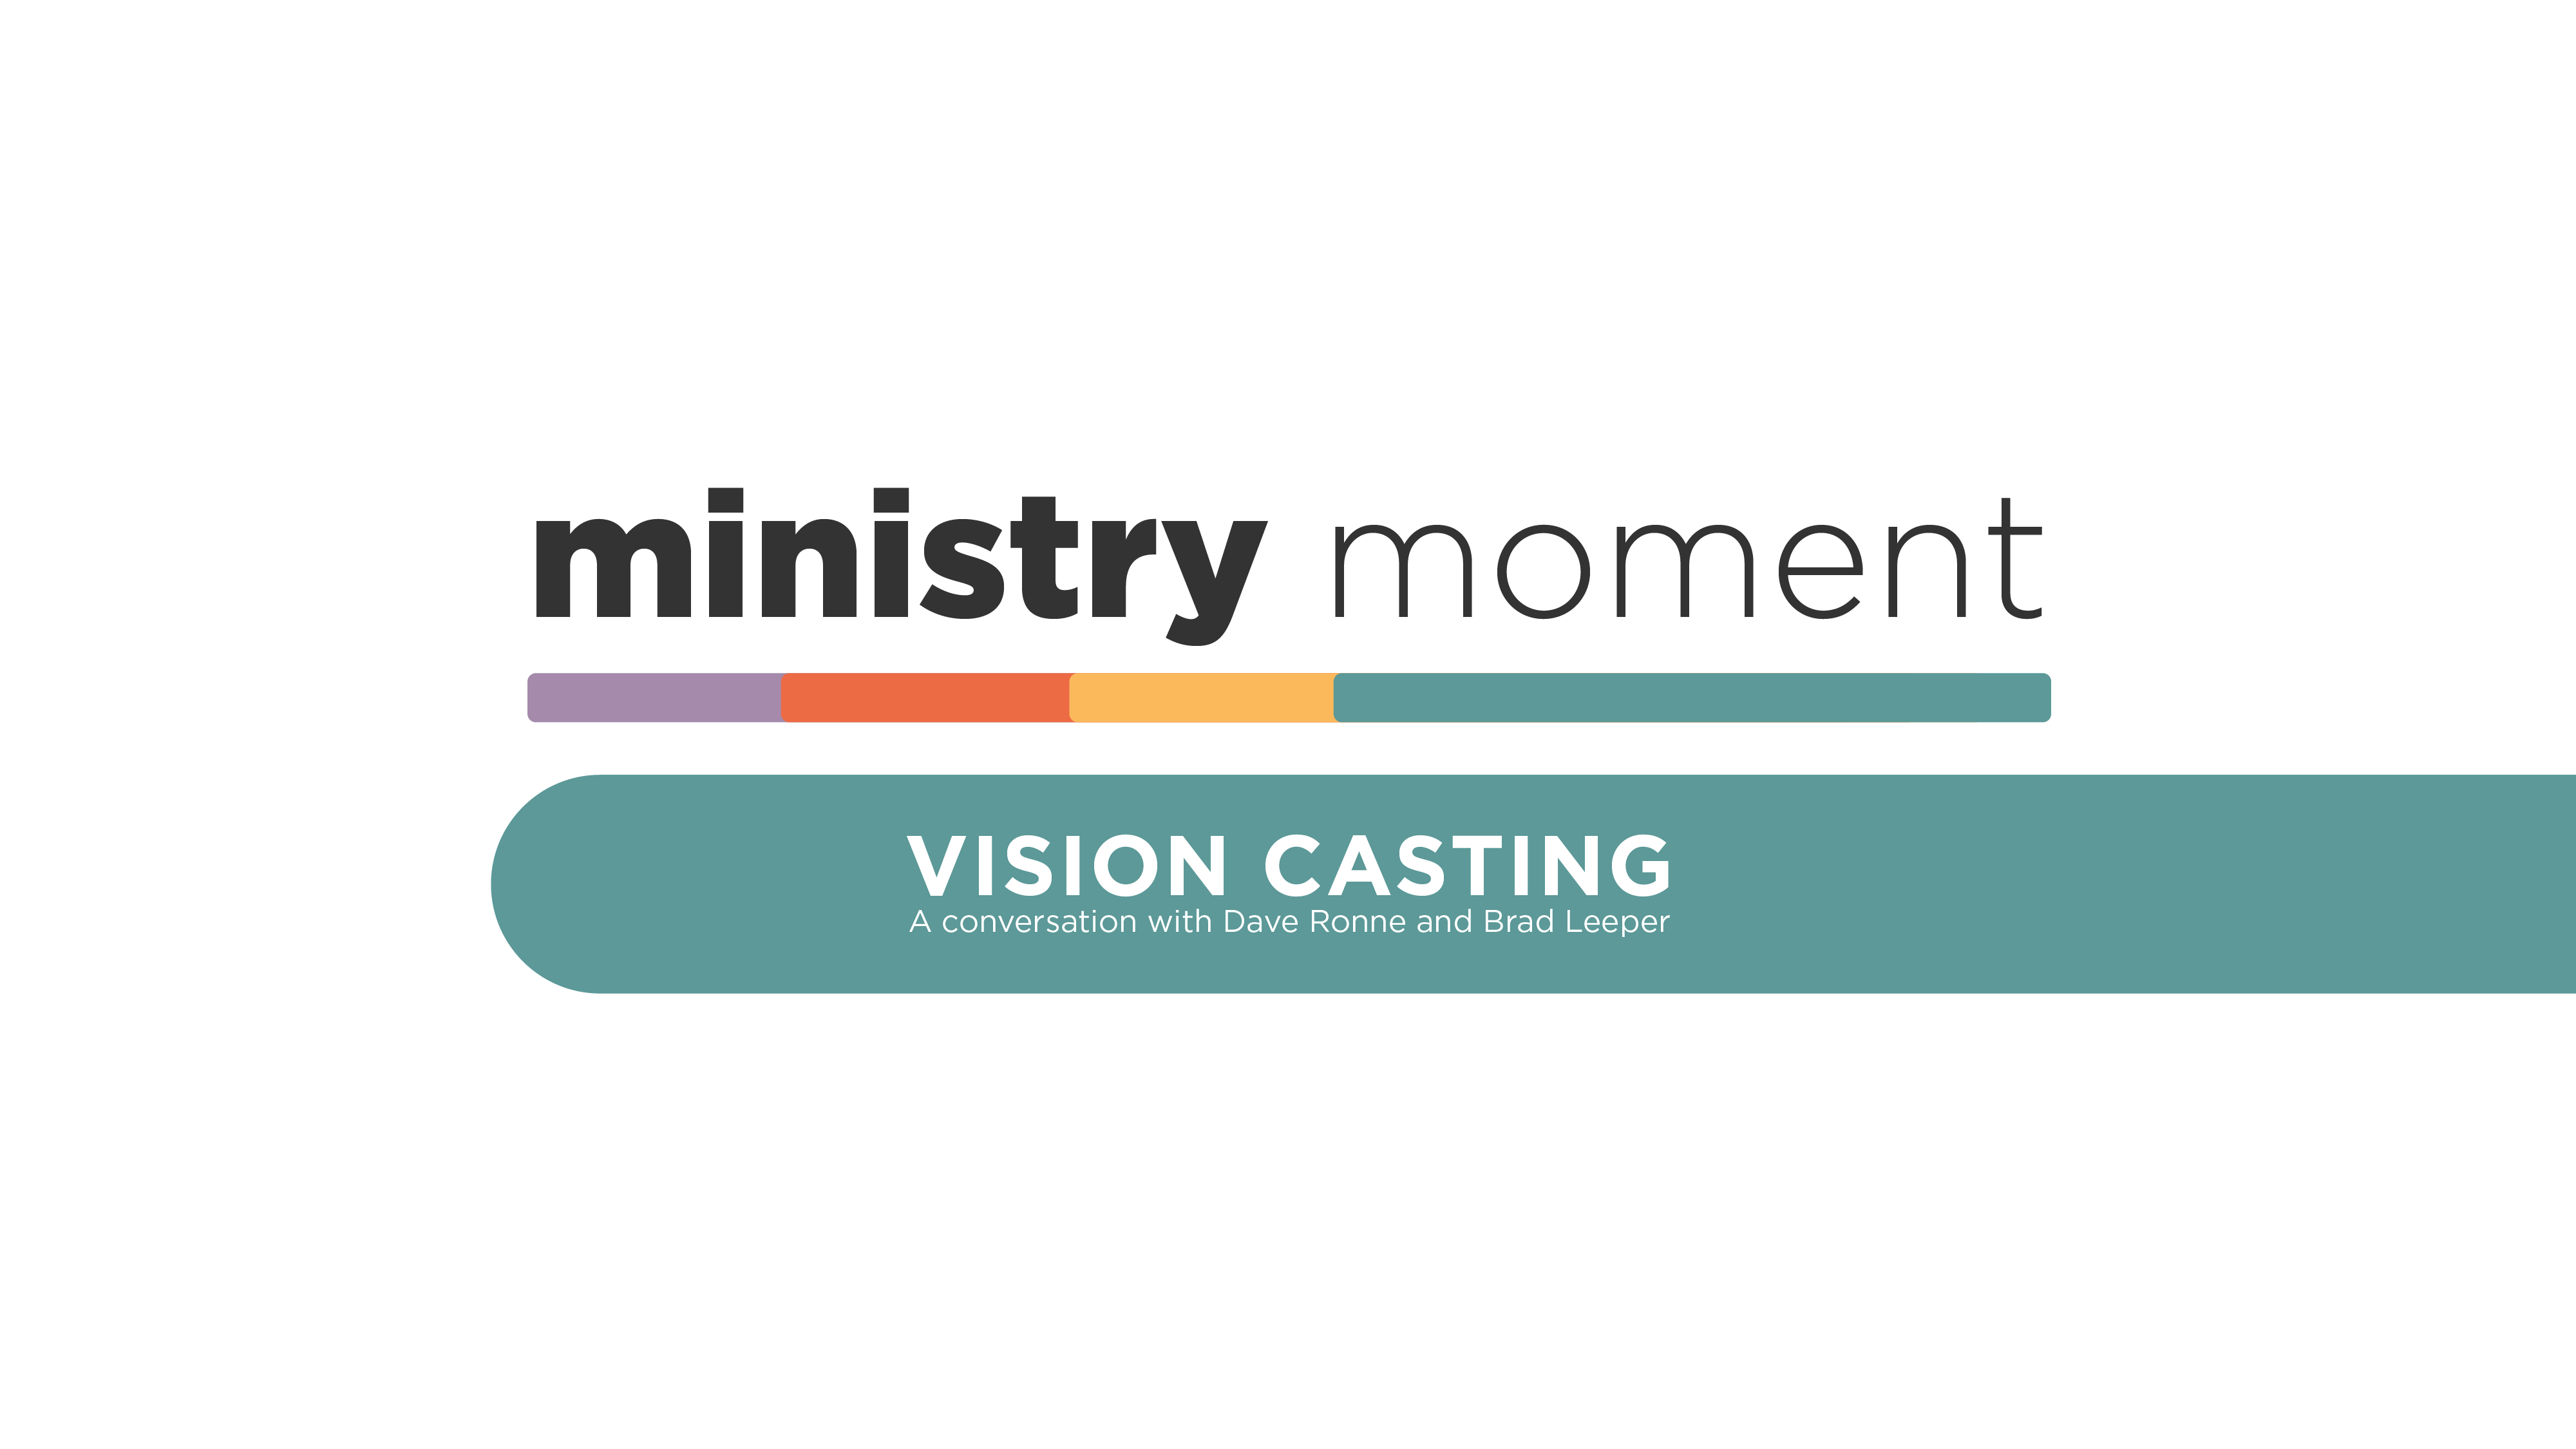 Vision Casting: A Conversation with Dave Ronne and Brad Leeper